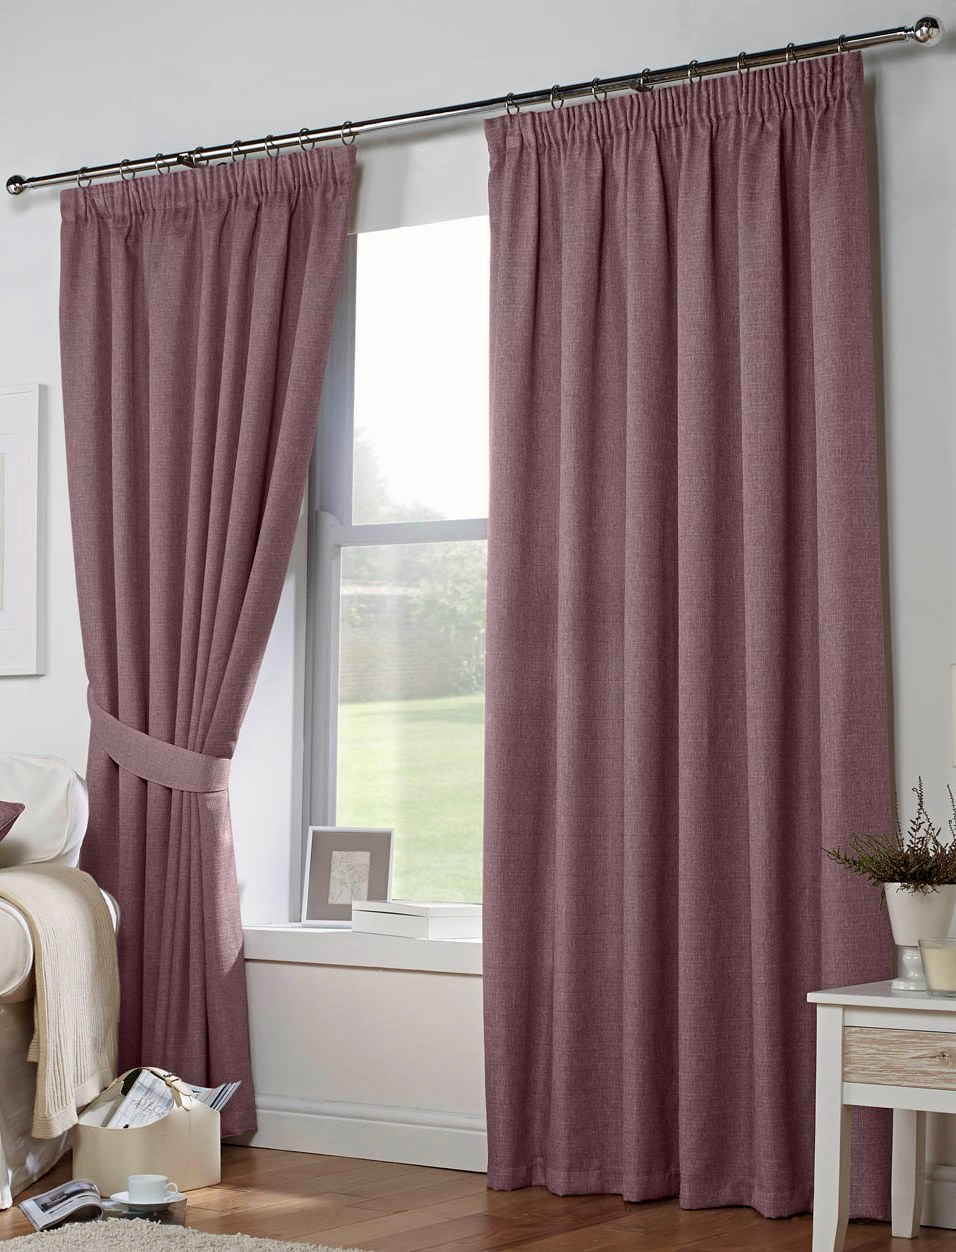 Double Rod Pocket Sheer Curtains Drapery Rods for Bay Windows